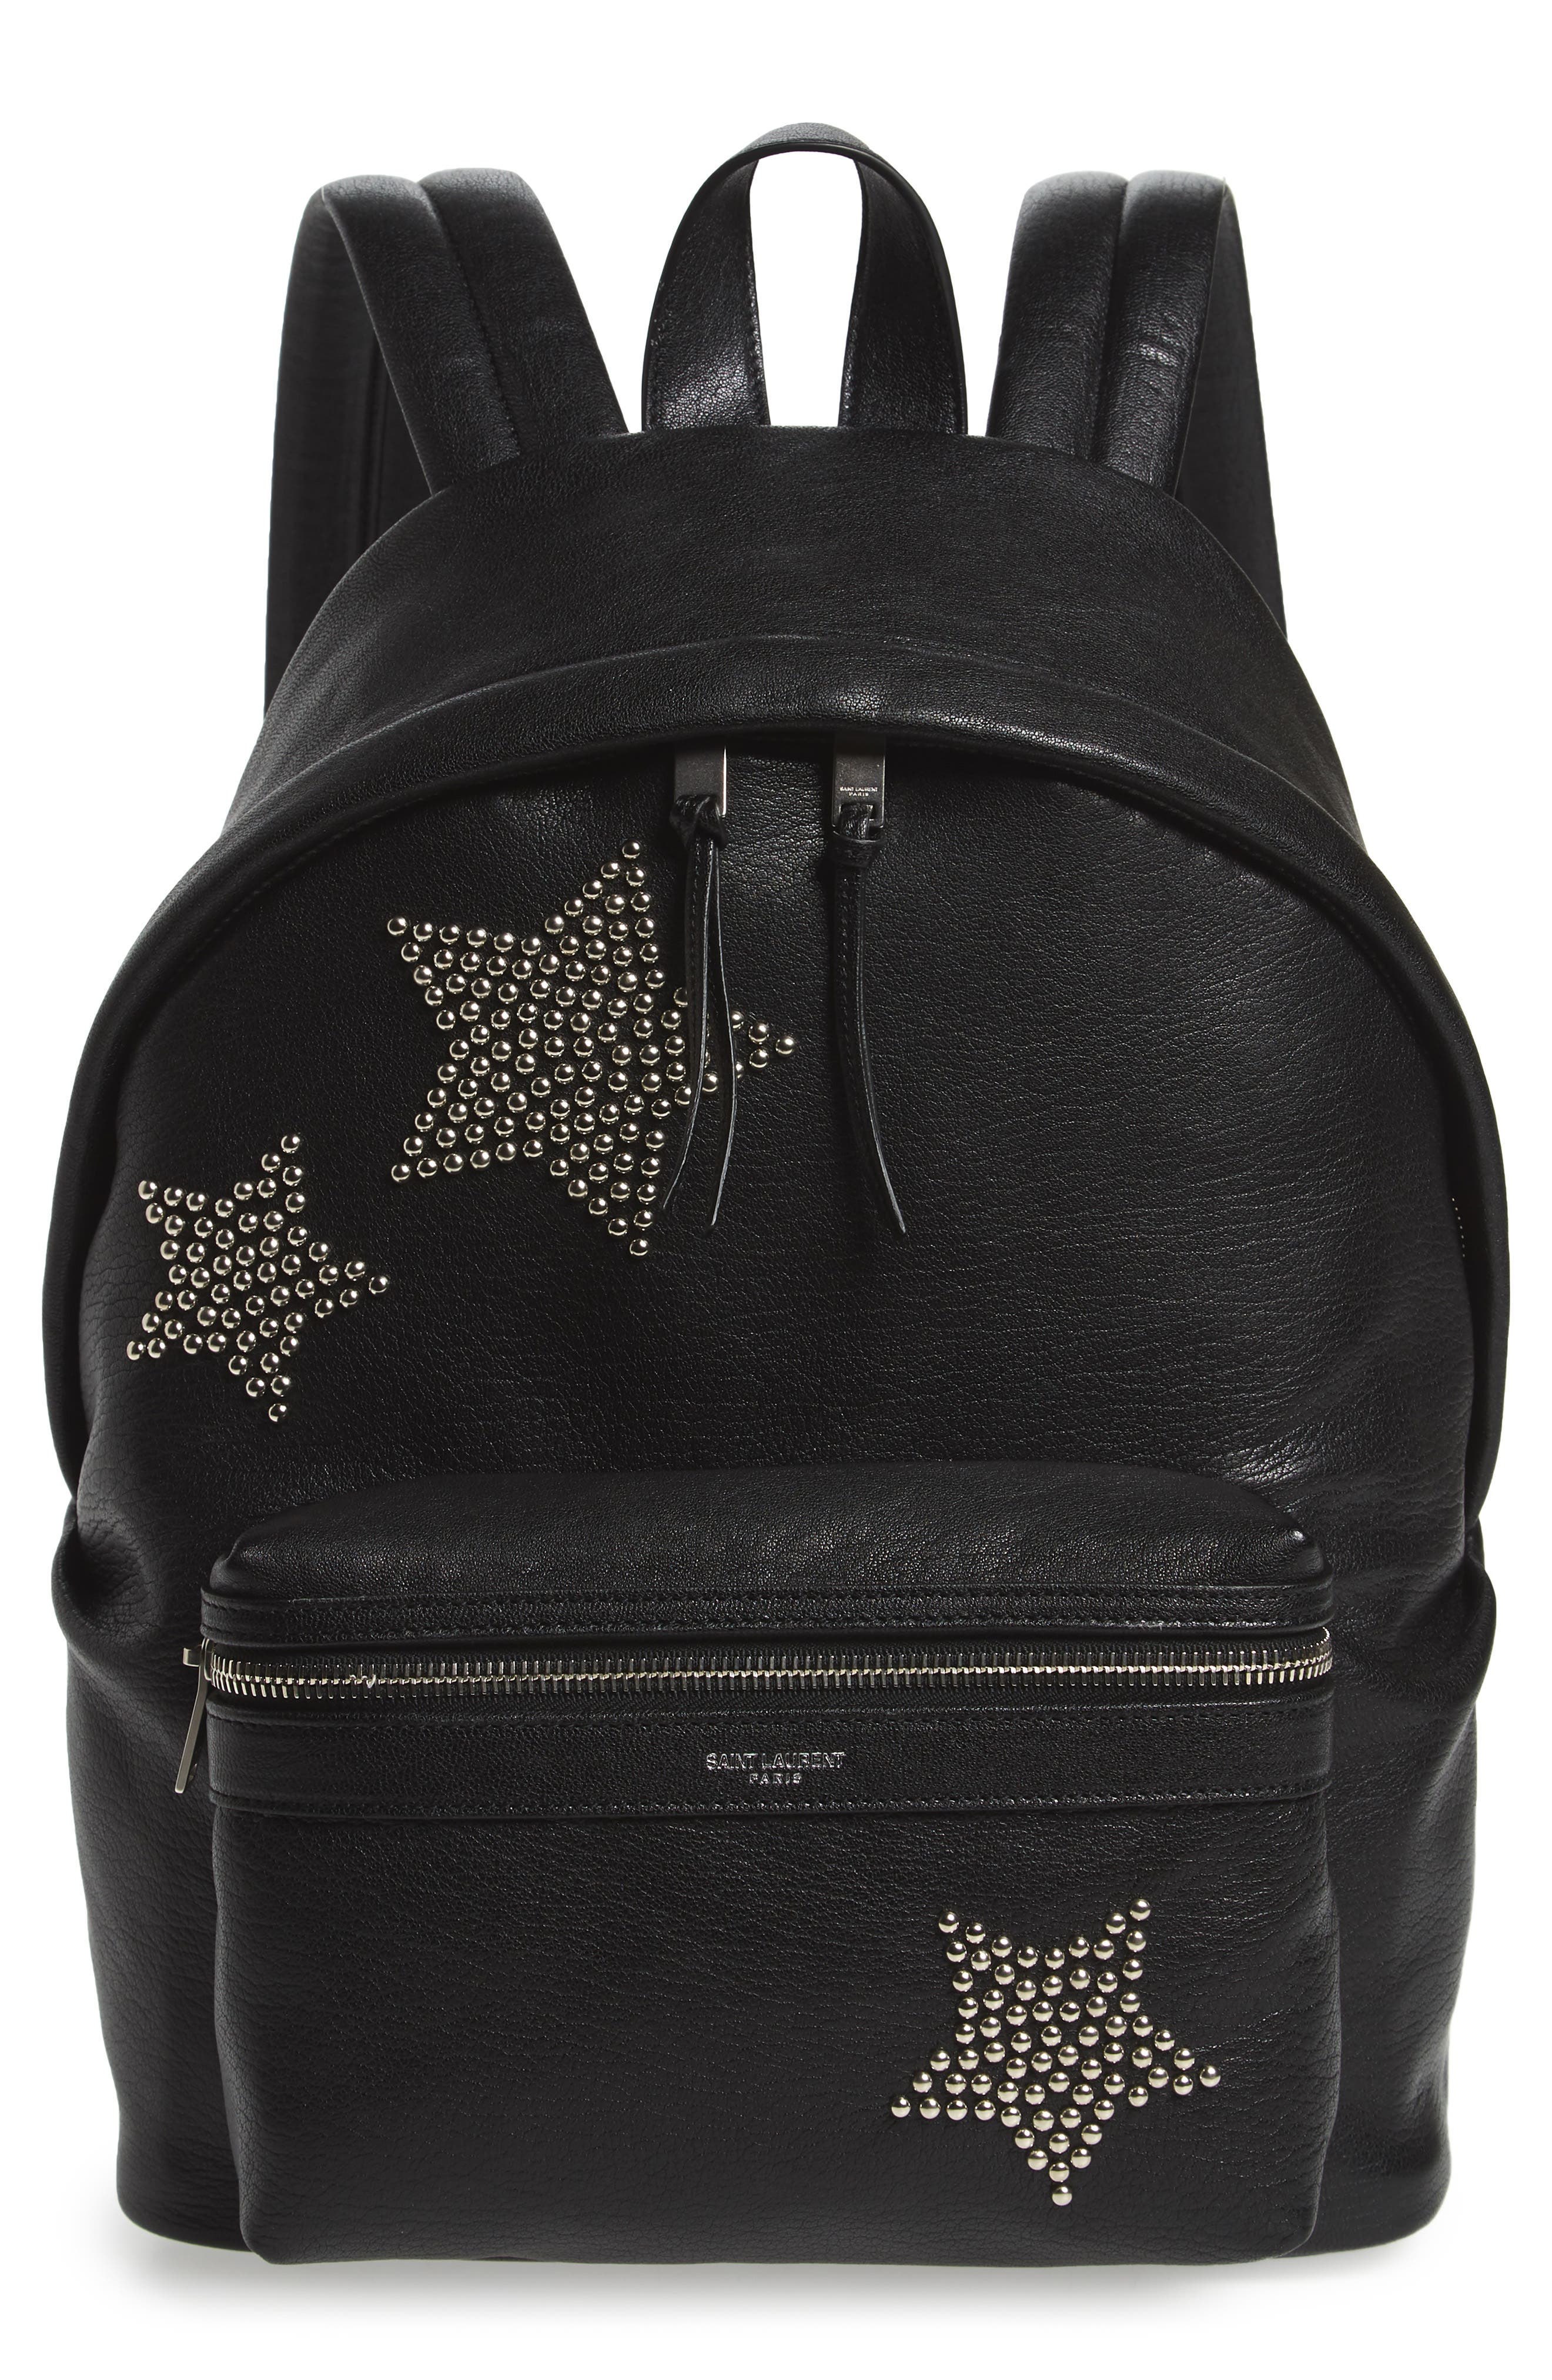 MINI CITY STARS LEATHER BACKPACK - BLACK